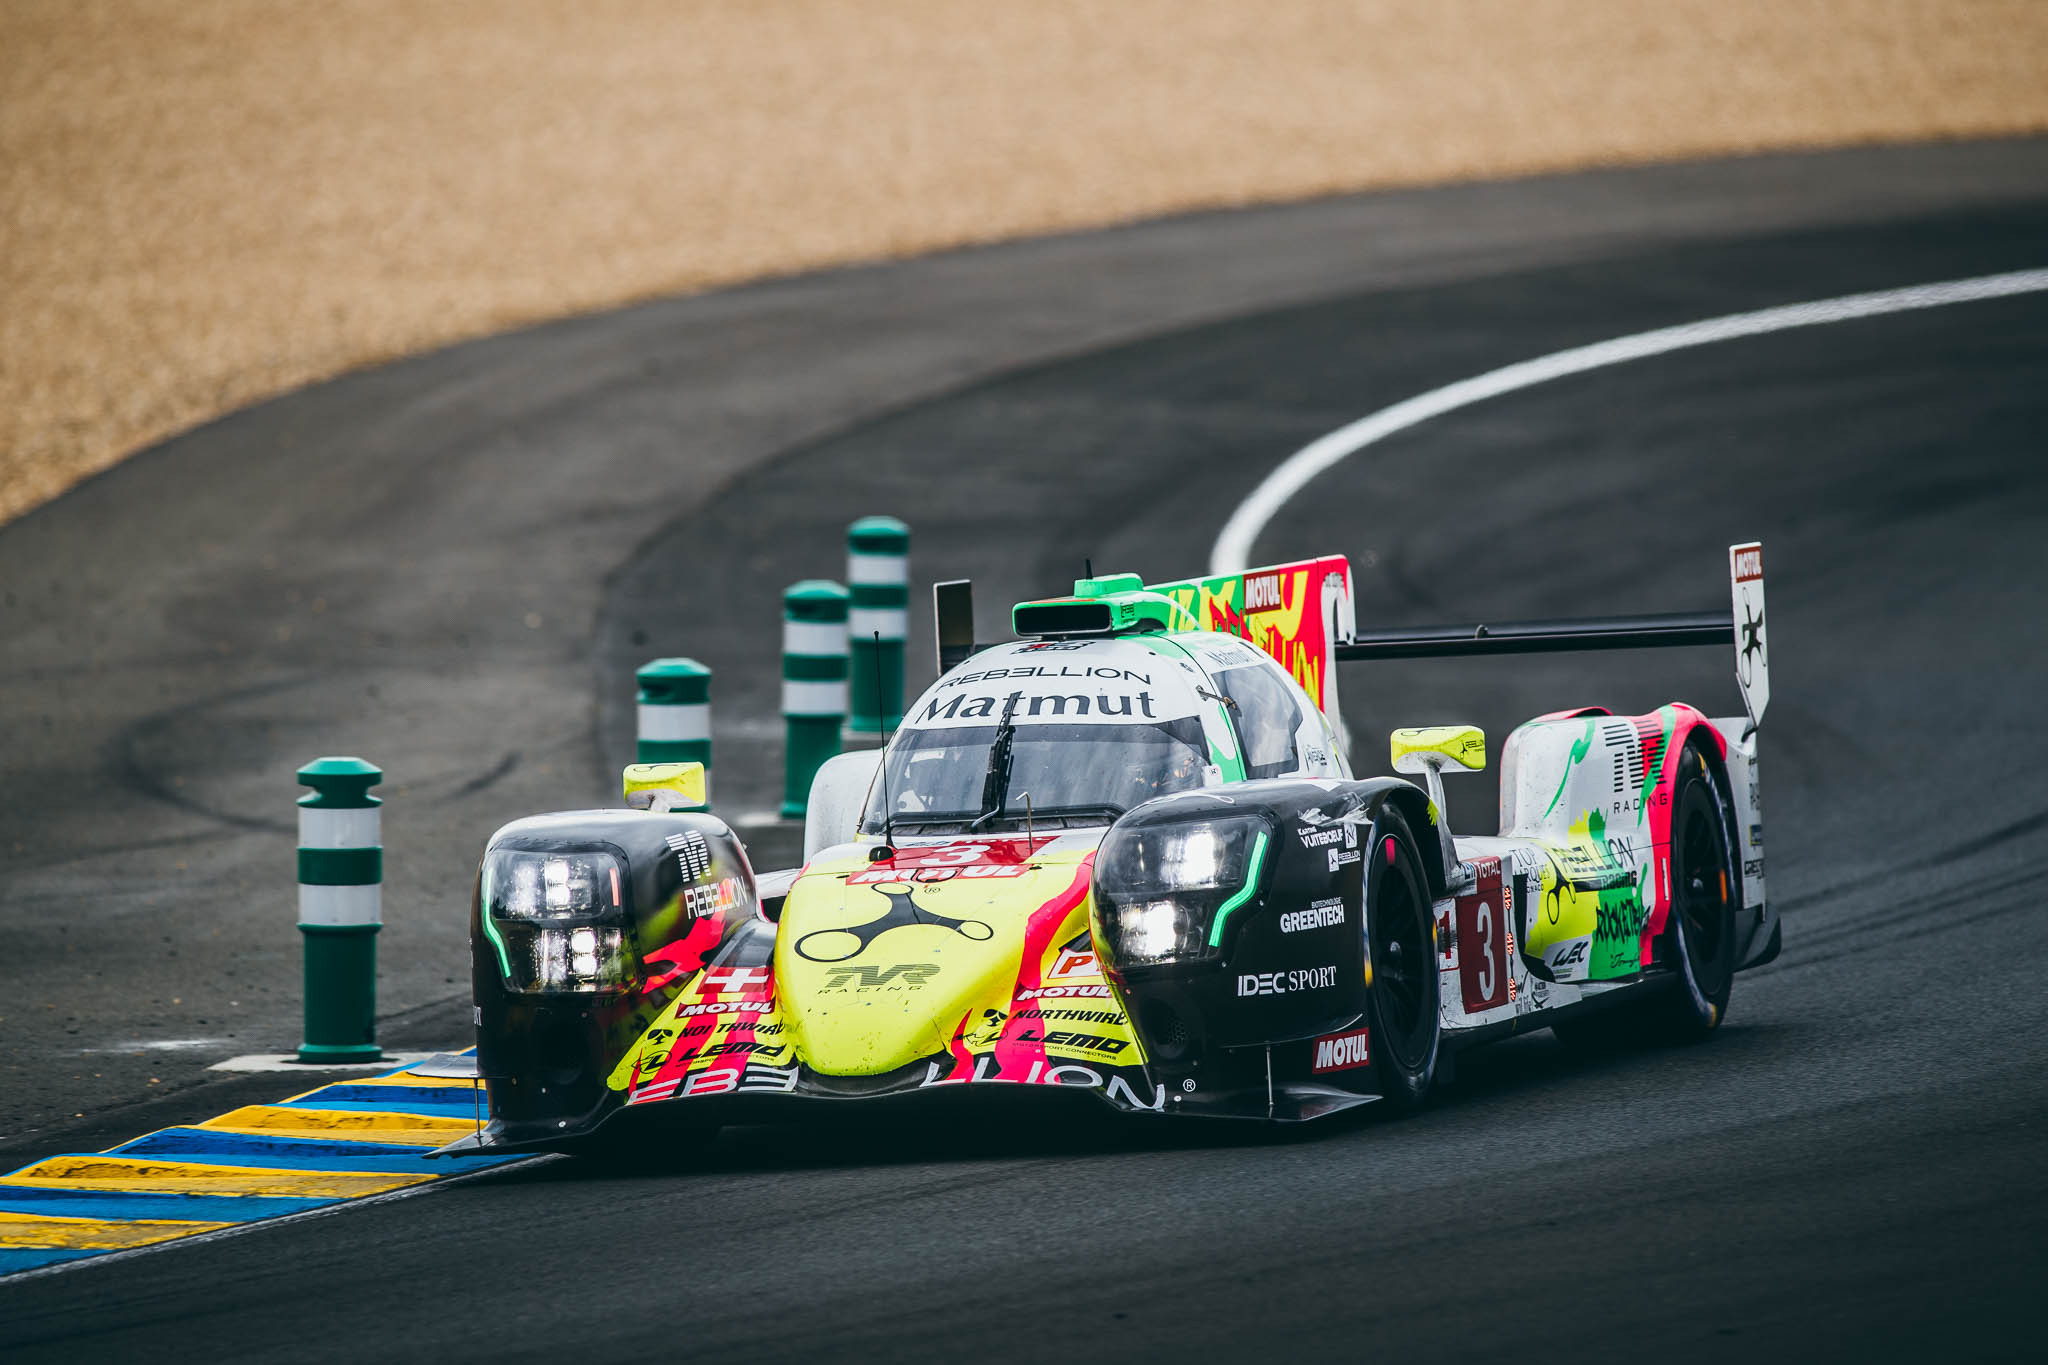 Motul - News/ The Drum - THE REVVING HEARTS OF THE LMP1